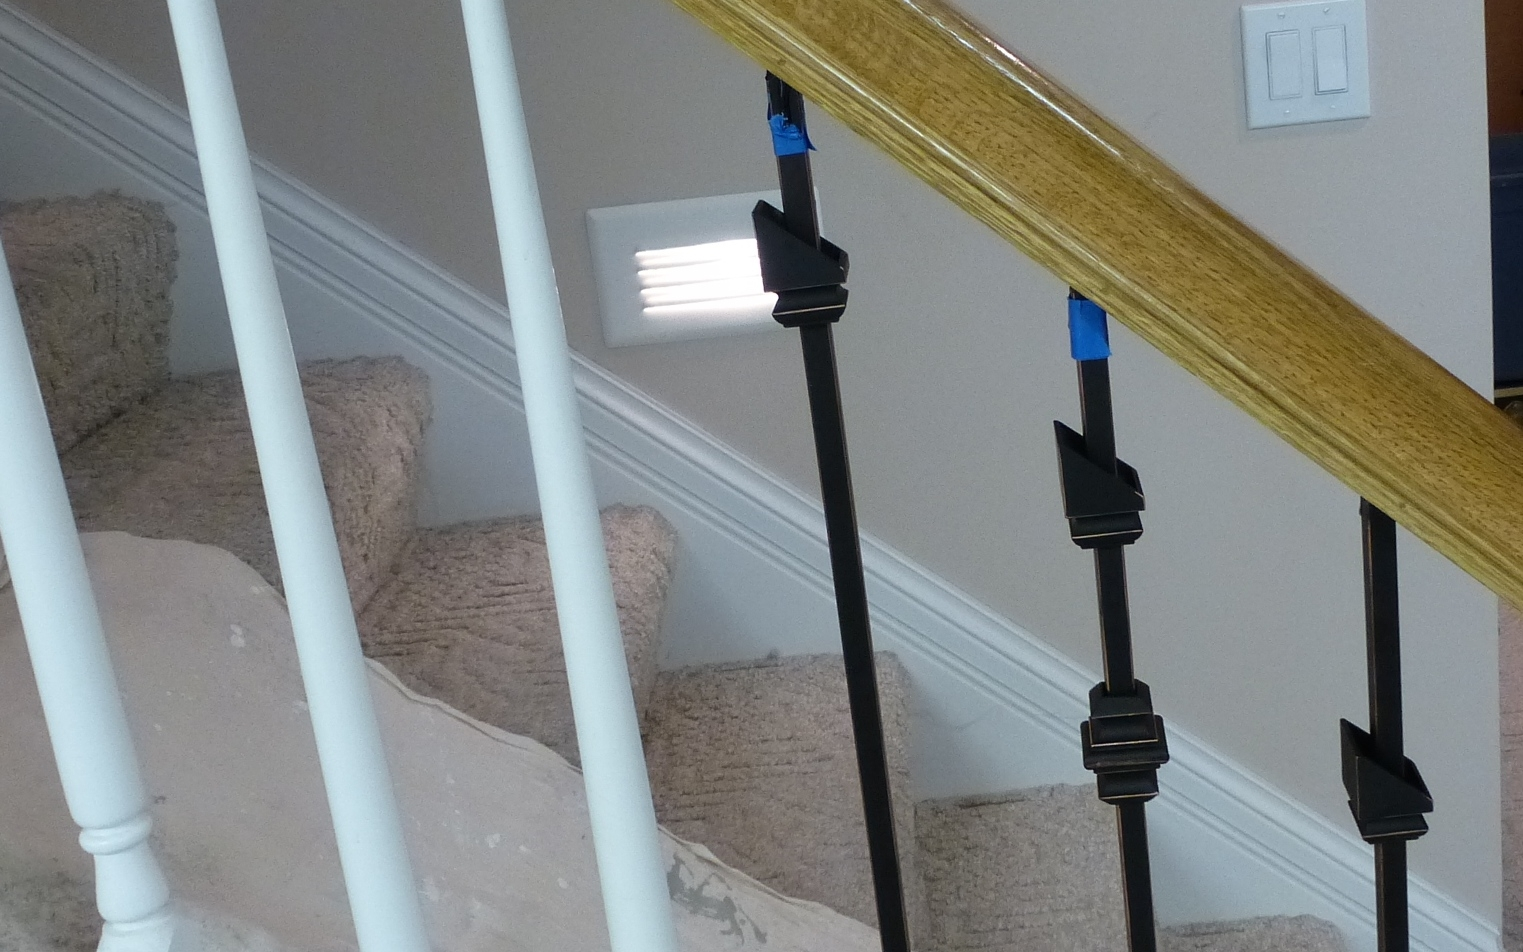 Replacing Wooden Stair Balusters Spindles With Wrought Iron | Replacing Wood Spindles With Metal | Stair Spindles | Iron Stair Balusters | Stair Parts | Stair Railing | Staircase